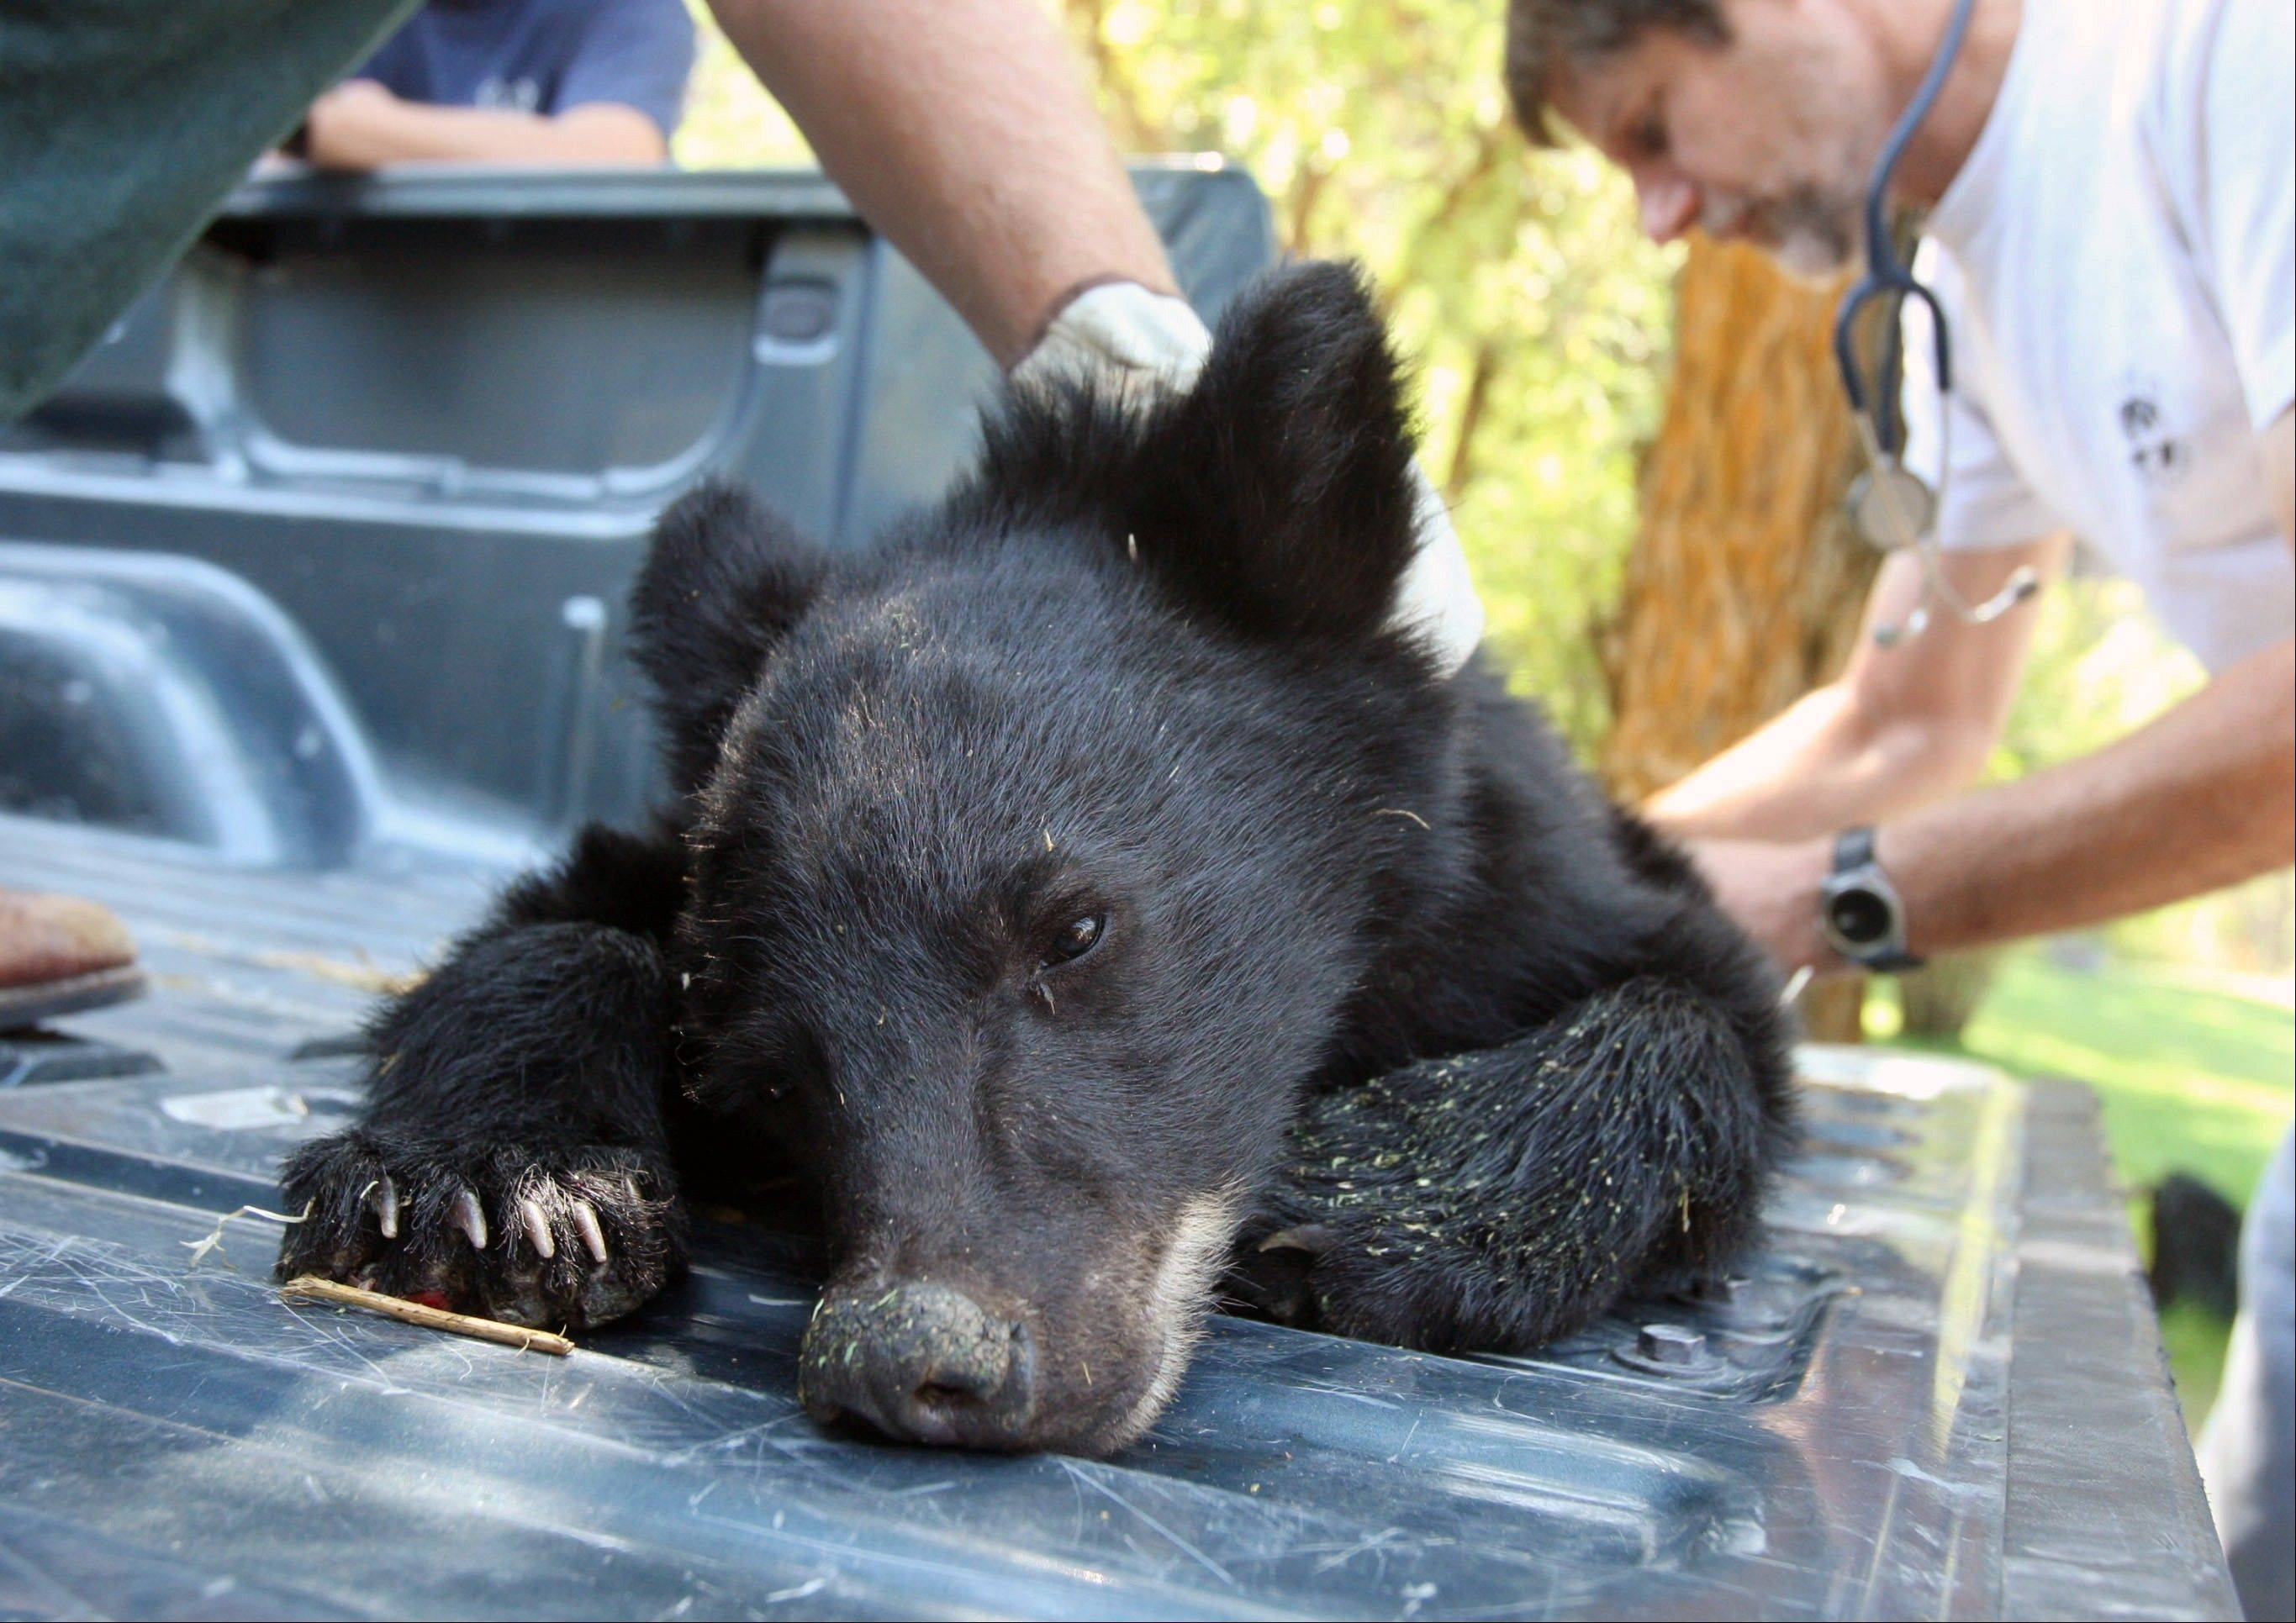 A bear cub nicknamed Boo Boo is examined Aug. 28 by Idaho officials after he was found by firefighters trying to escape a wildfire near Salmon, Idaho.